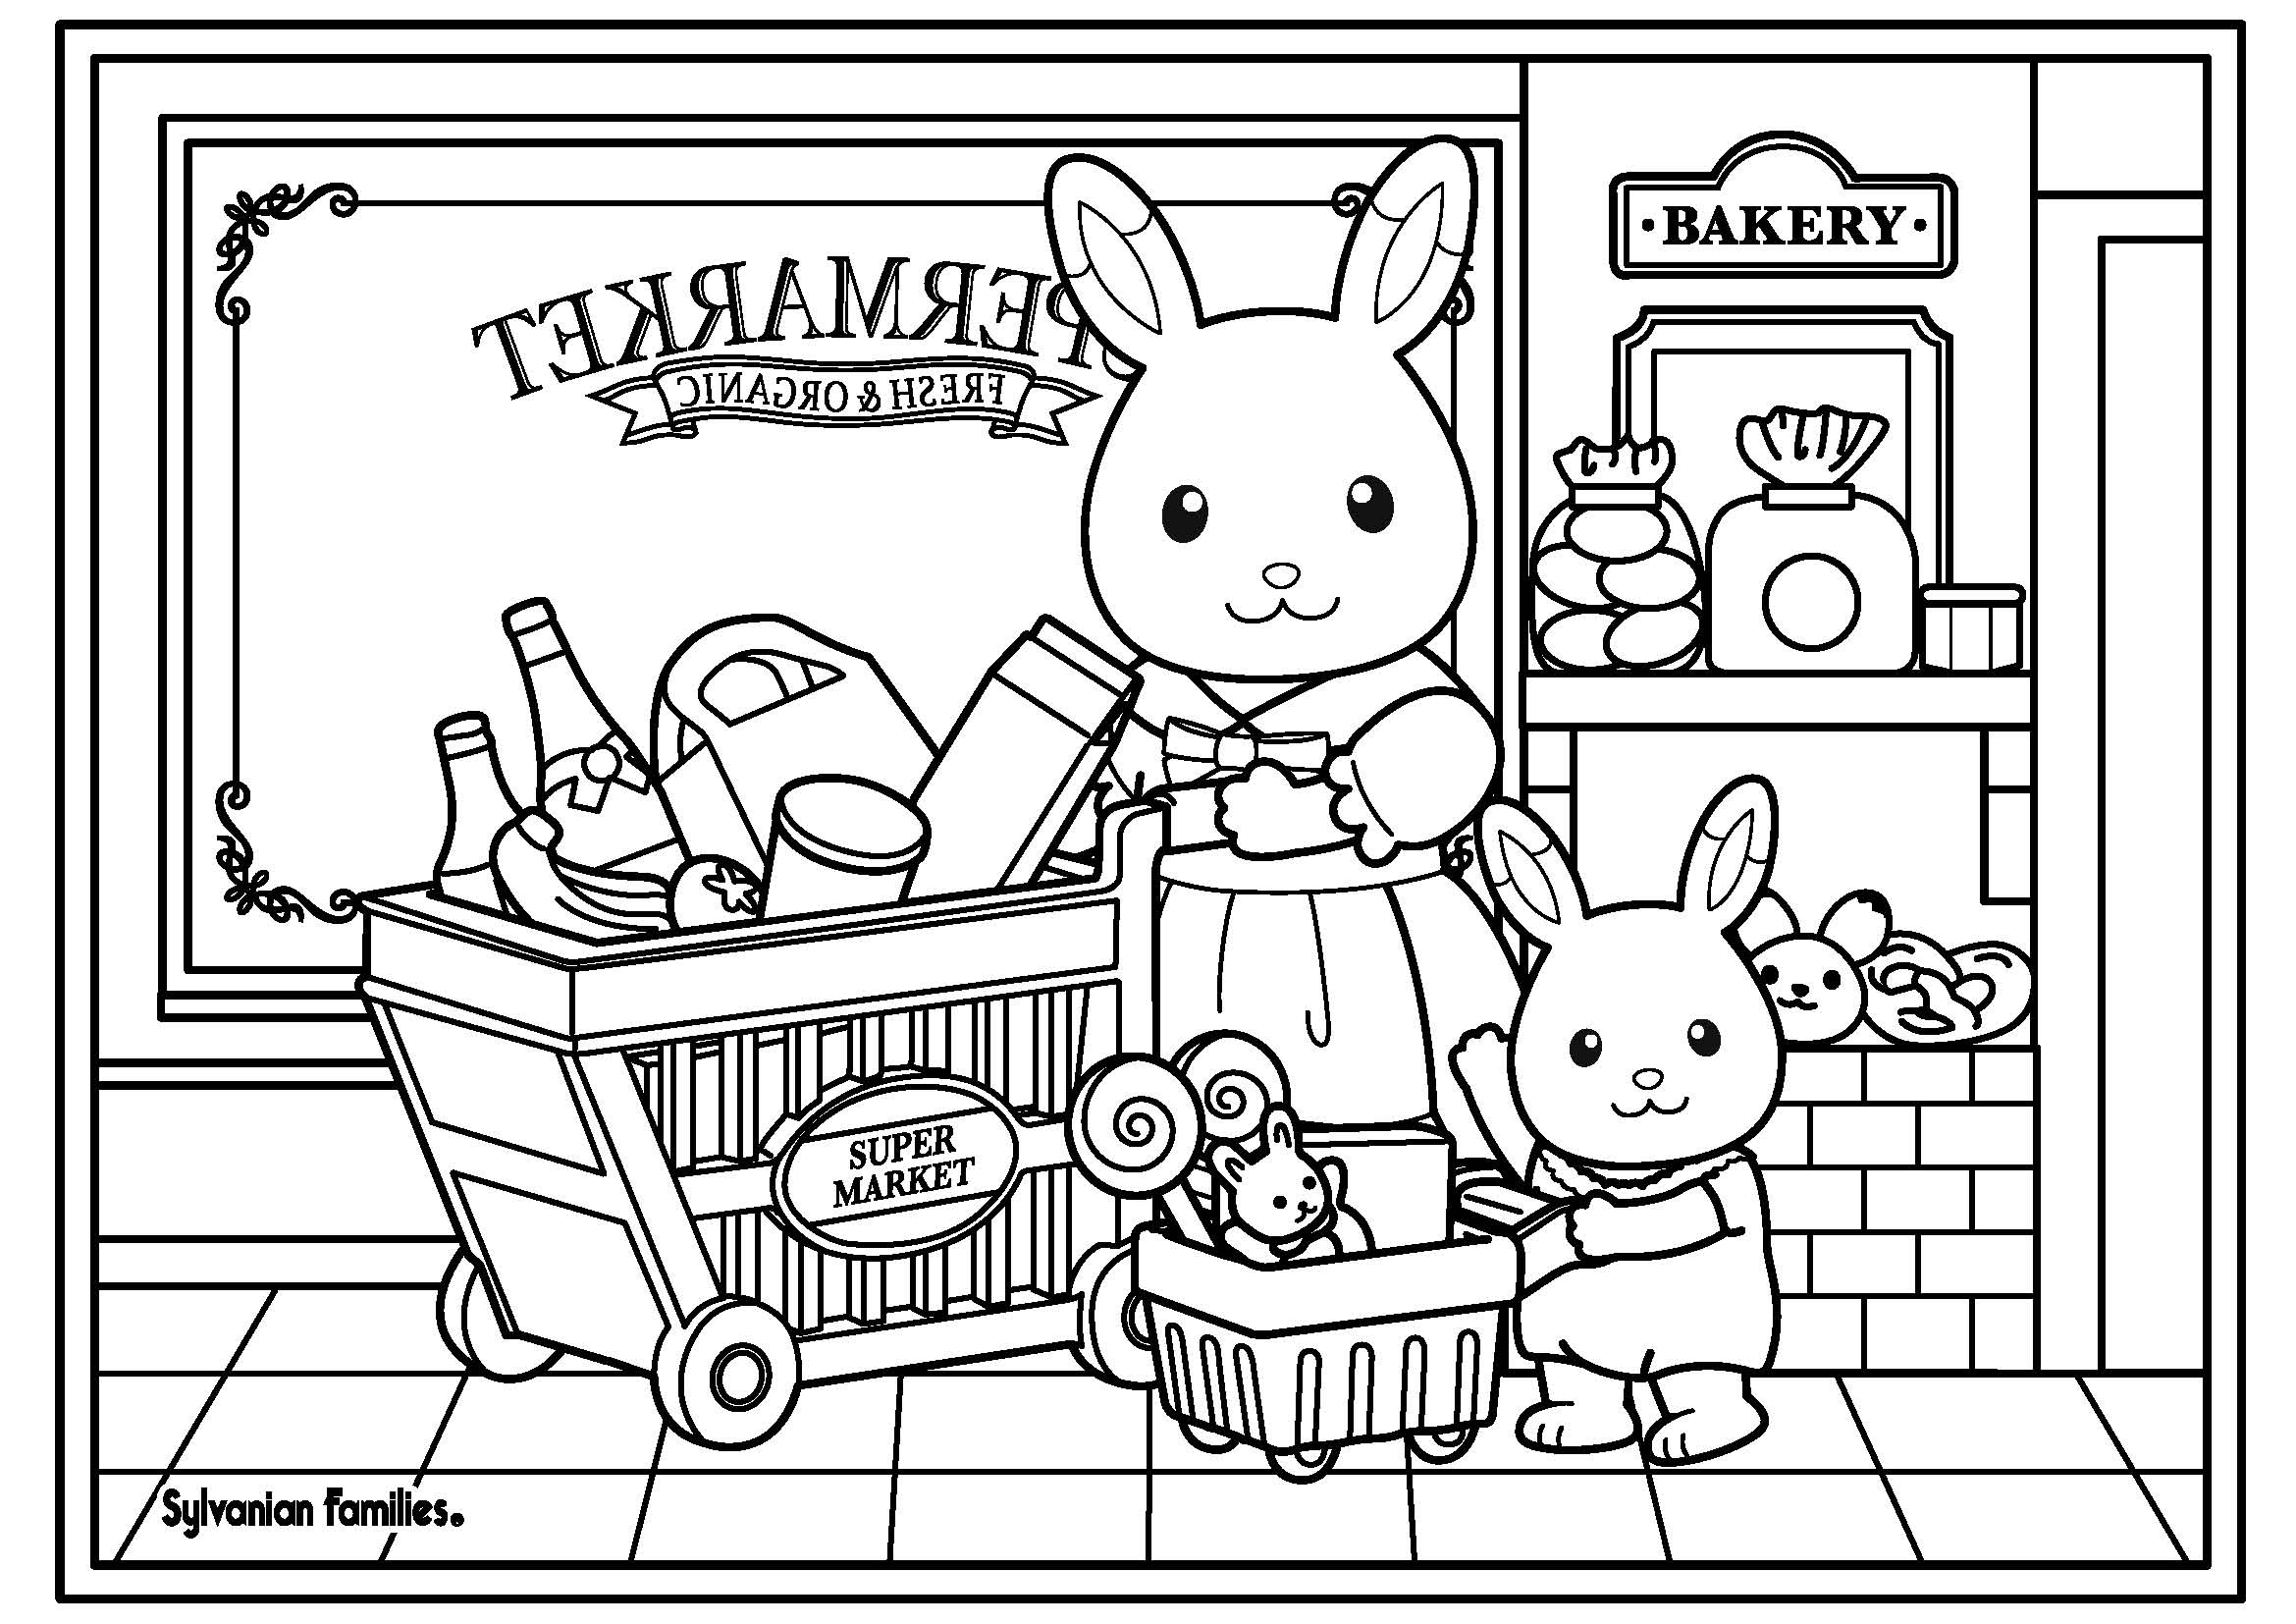 Baby Calico Critters Coloring Page Coloring Pages